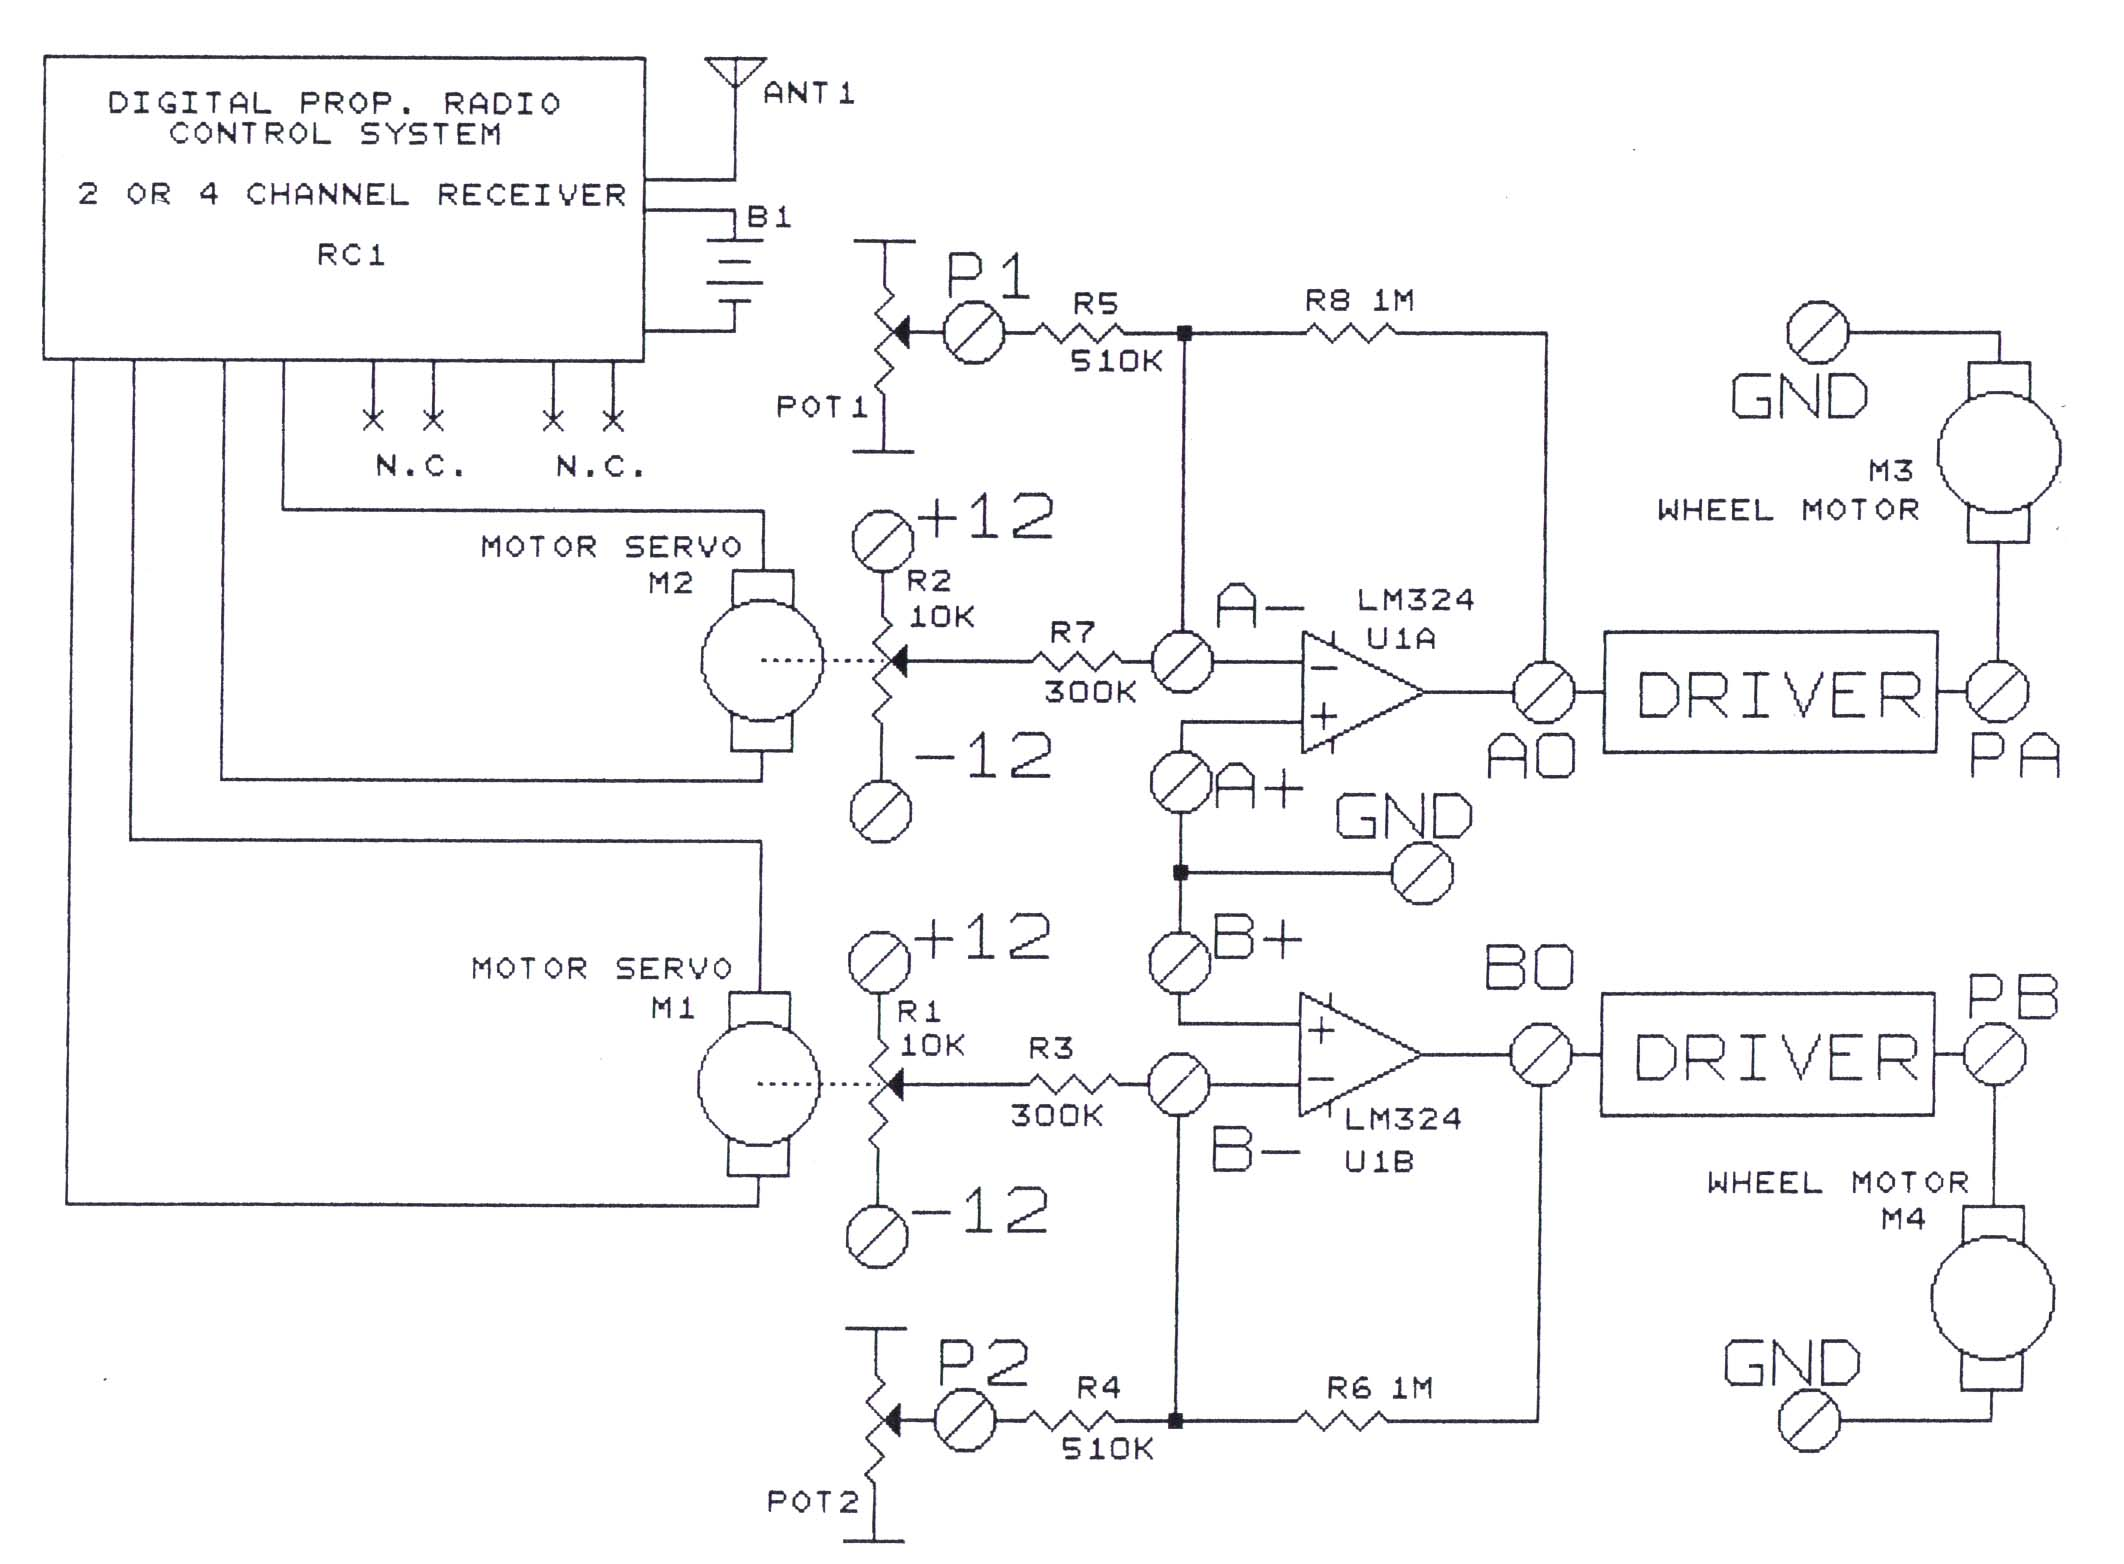 small resolution of  instructional diagram for radio remote control using the power amplifier board